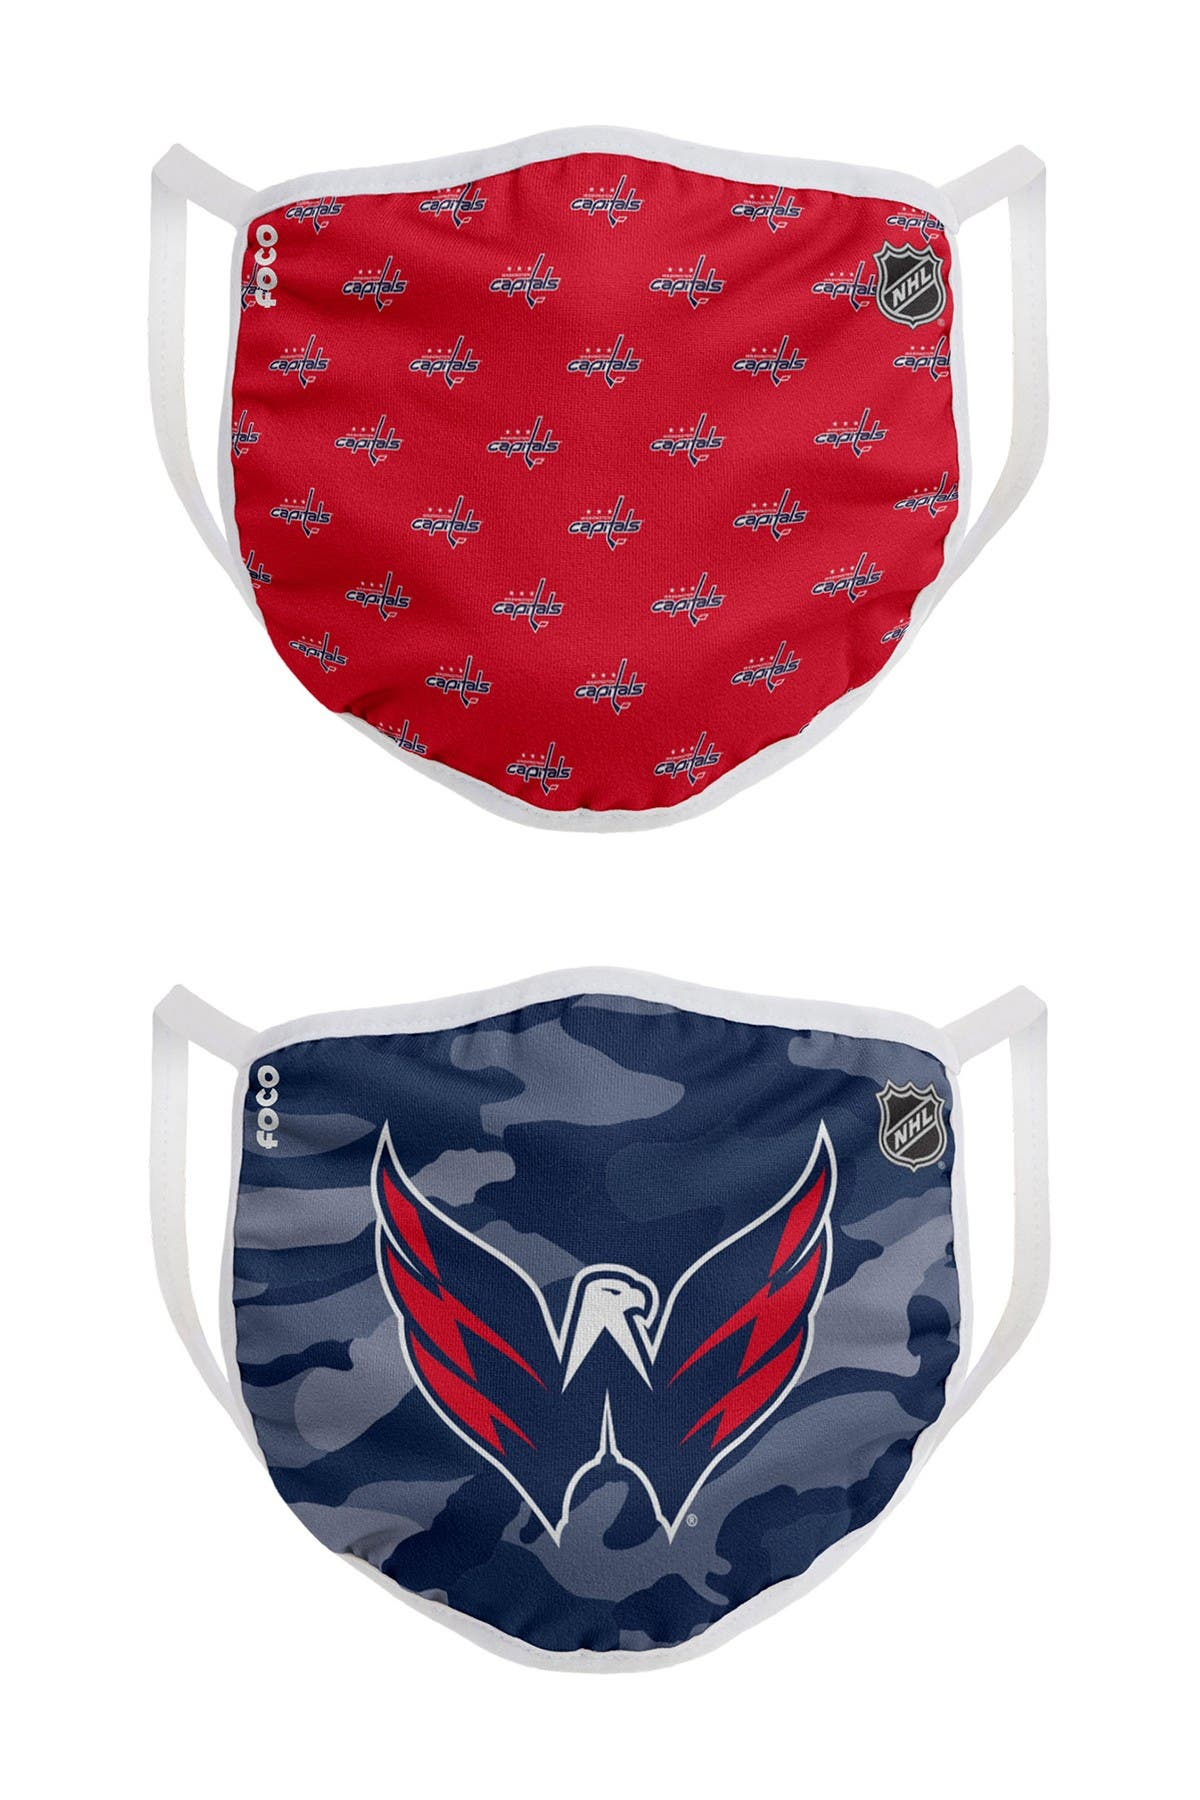 Image of FOCO NHL Washington Capitals Clutch Printed Face Cover - Pack of 2